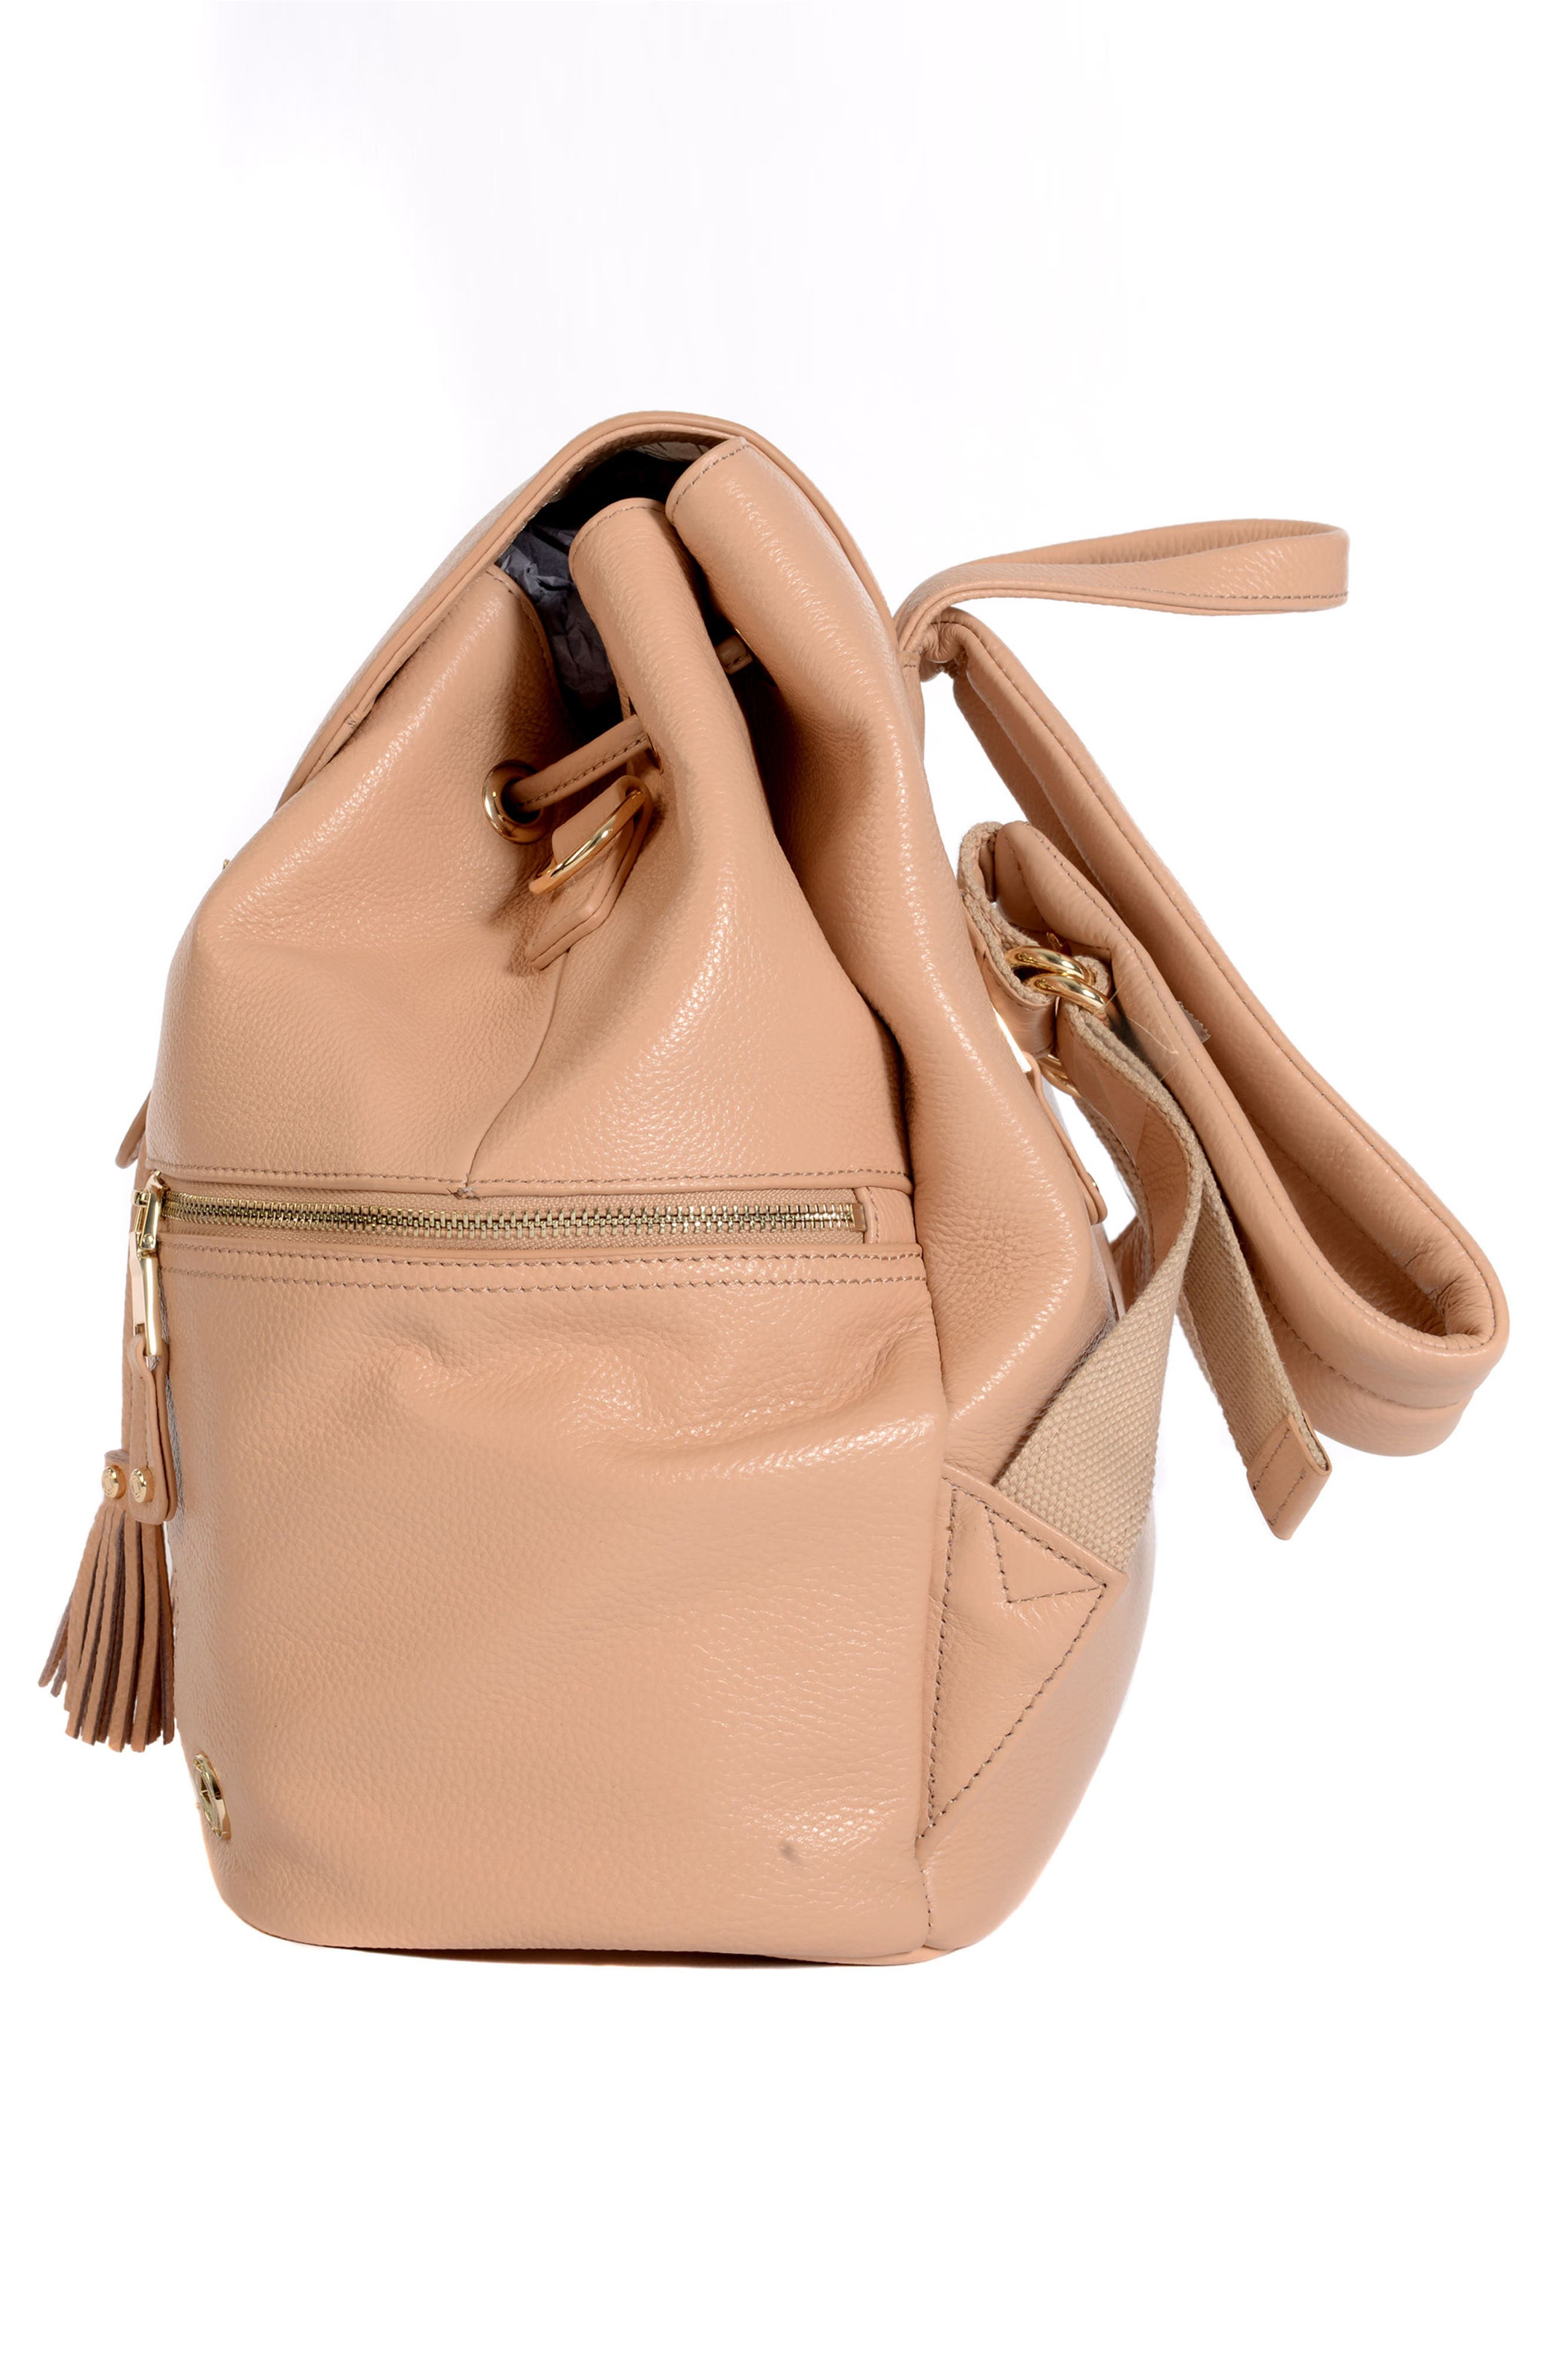 Thor Leather Backpack,                             Alternate thumbnail 4, color,                             Nude With Gold Hardware